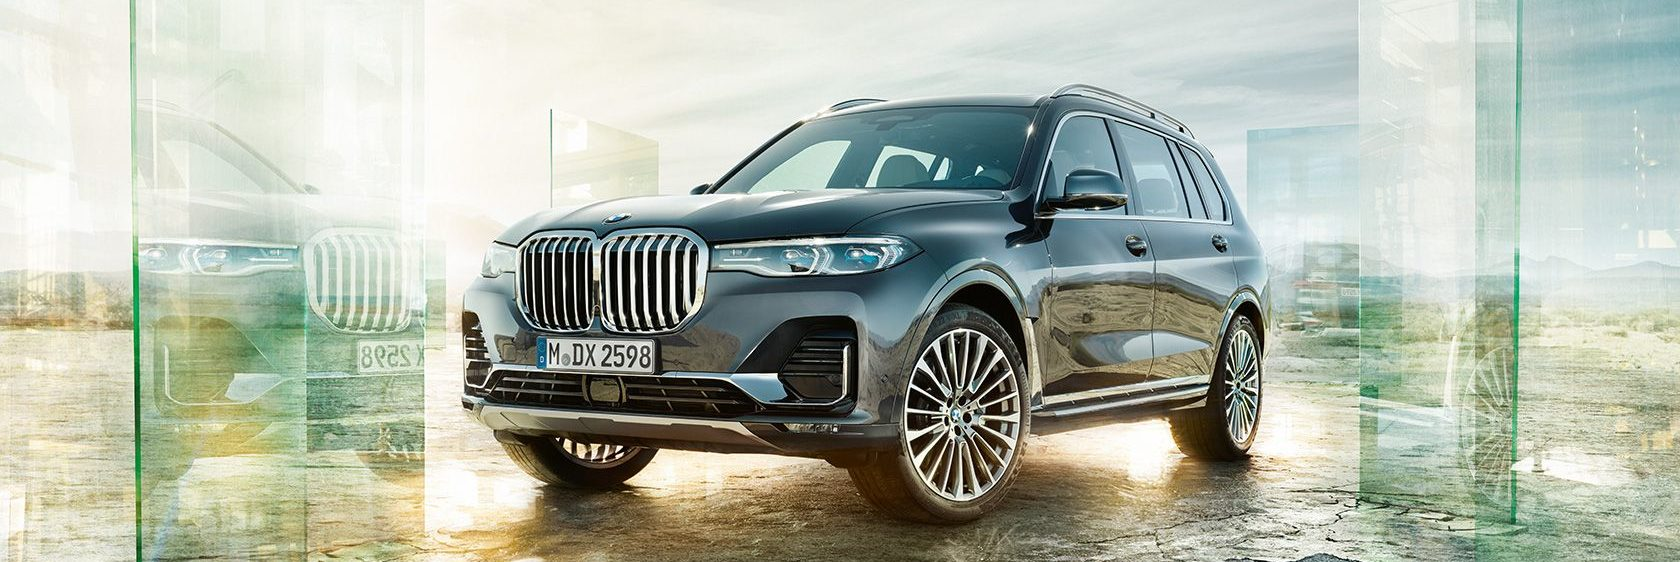 BMW X7 parked outside by glass mirror prisms